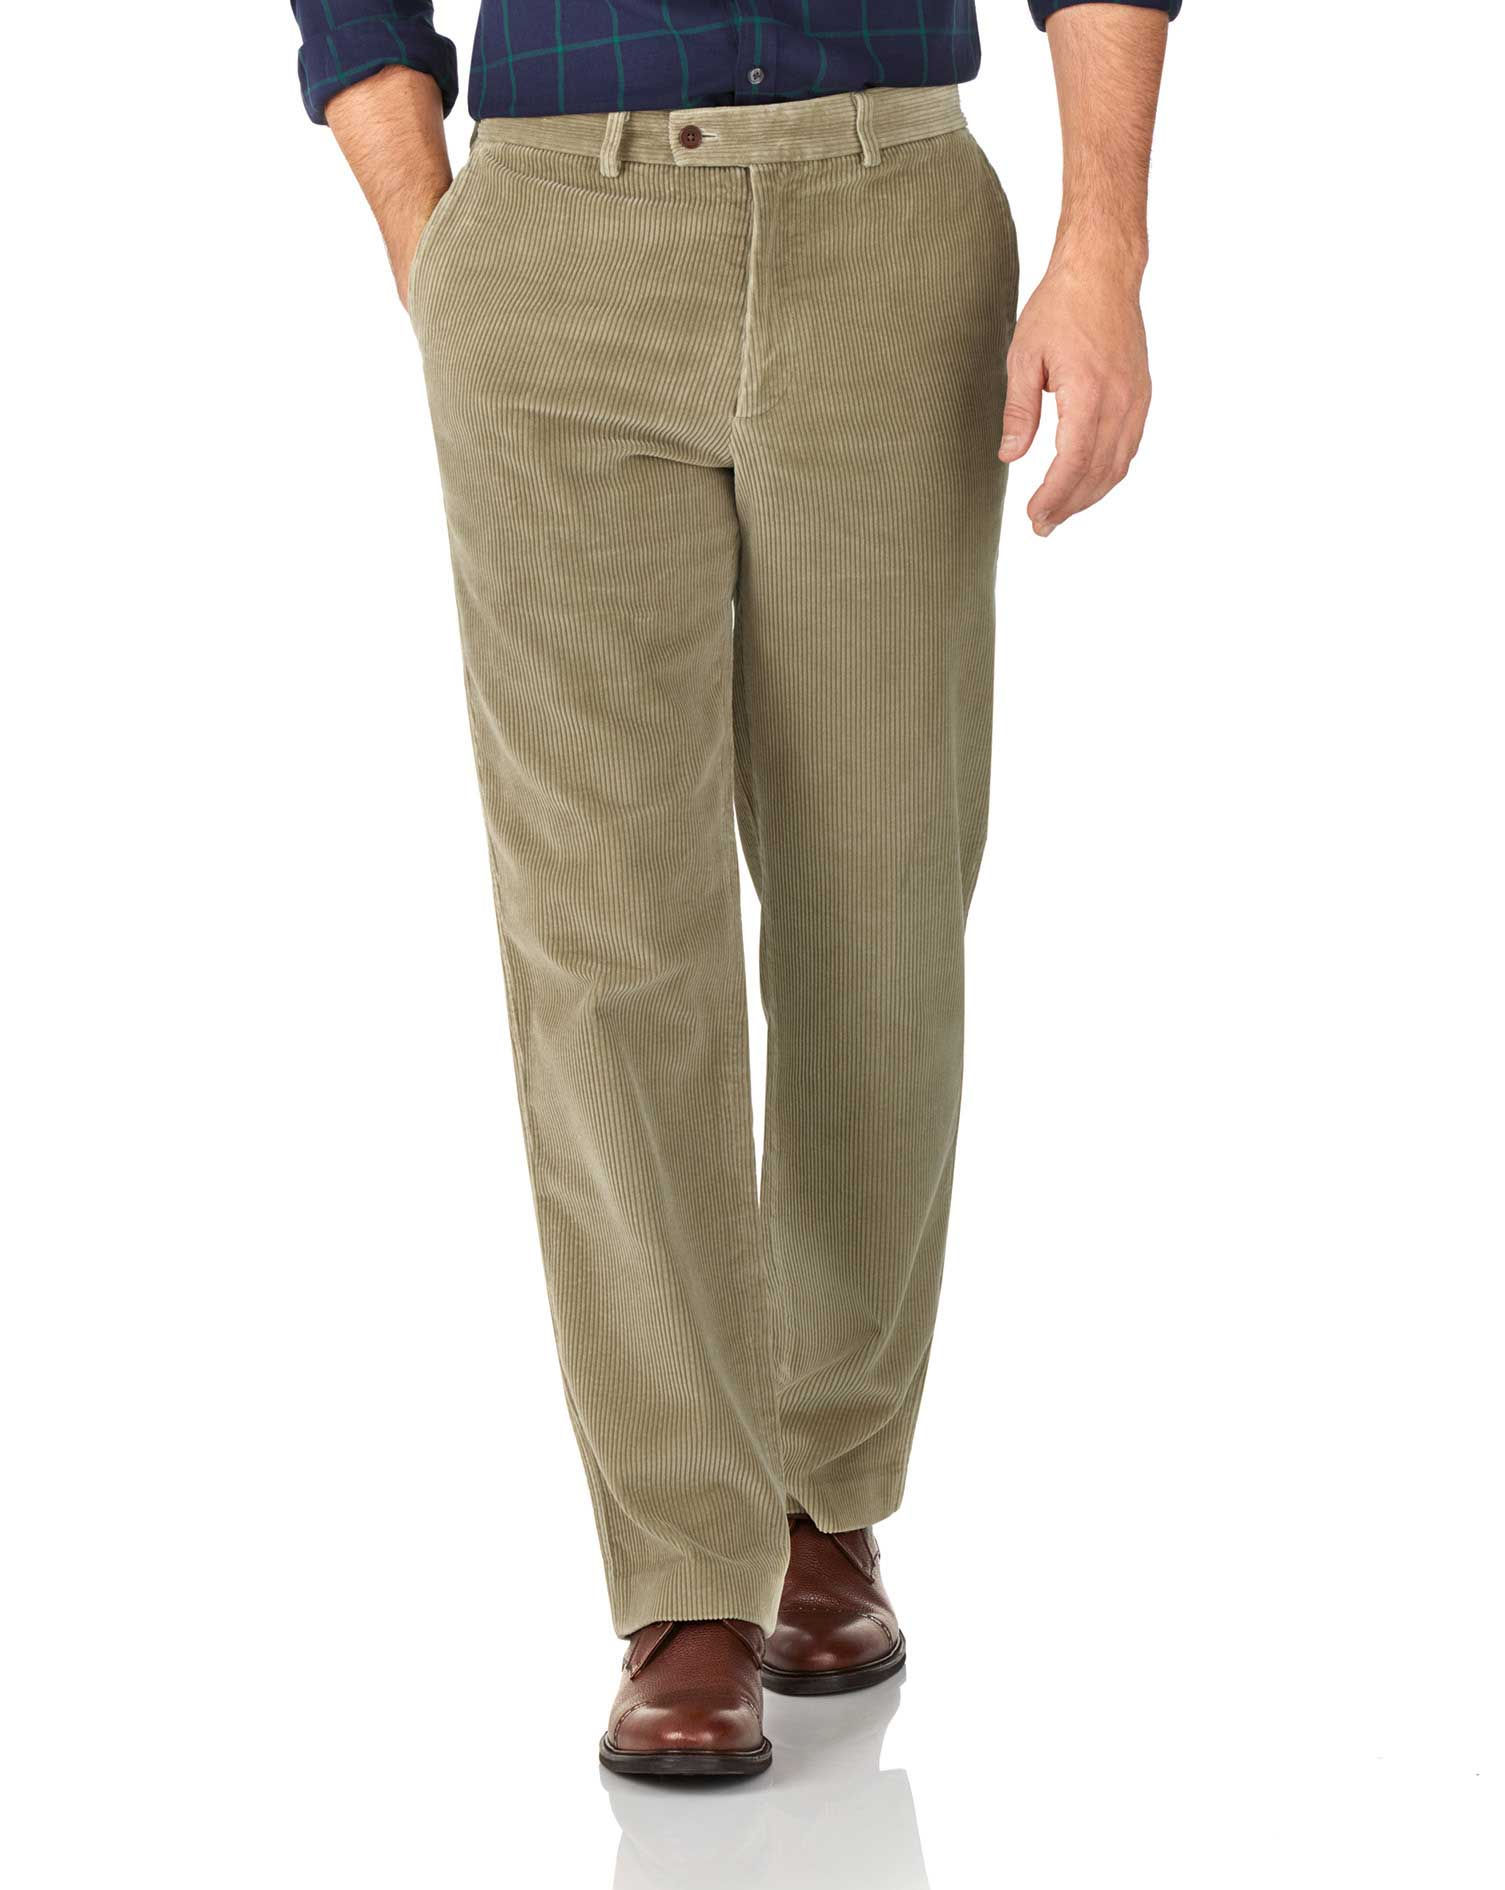 Light Brown Classic Fit Jumbo Cord Trousers Size W36 L30 by Charles Tyrwhitt